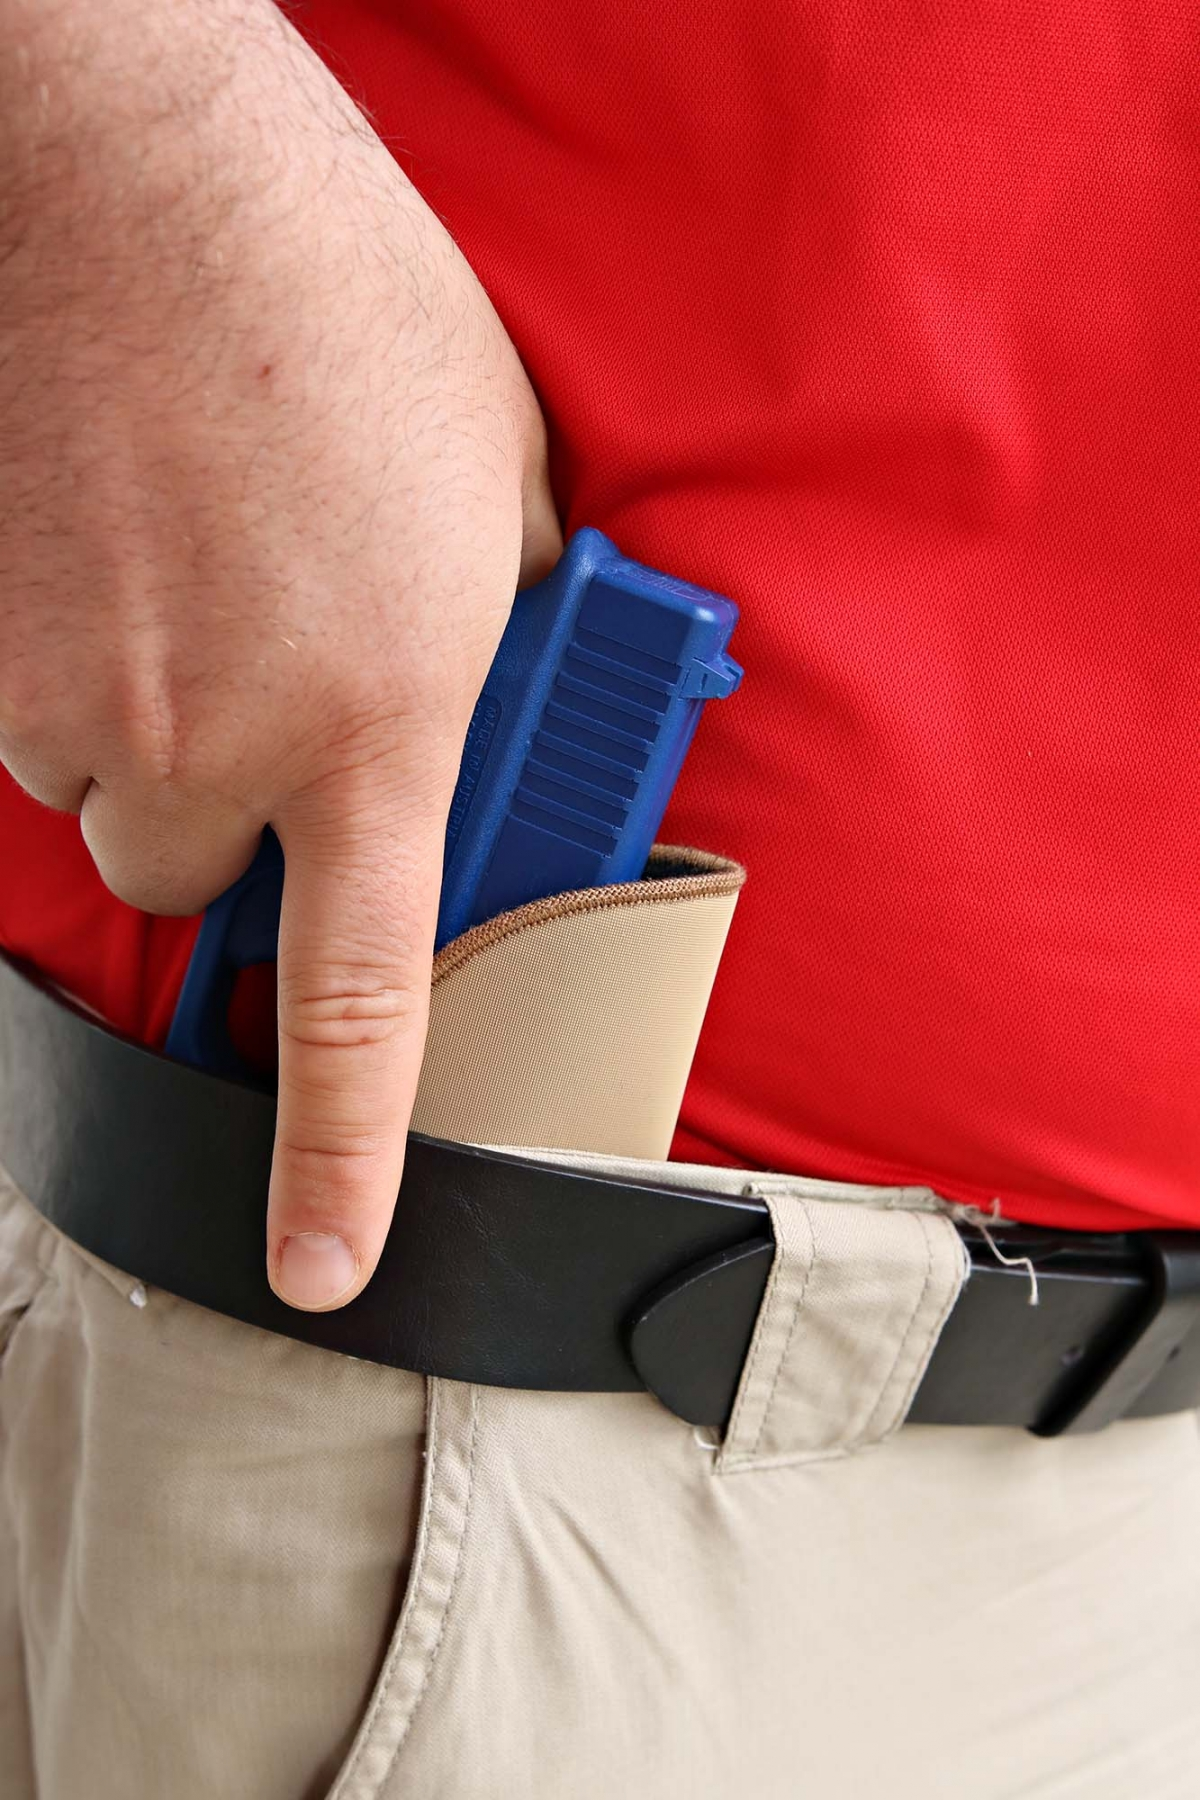 The BLACKHAWK! TecGrip IWB holster outer layer holds tightly to almost any material, keeping your firearm firmly holstered